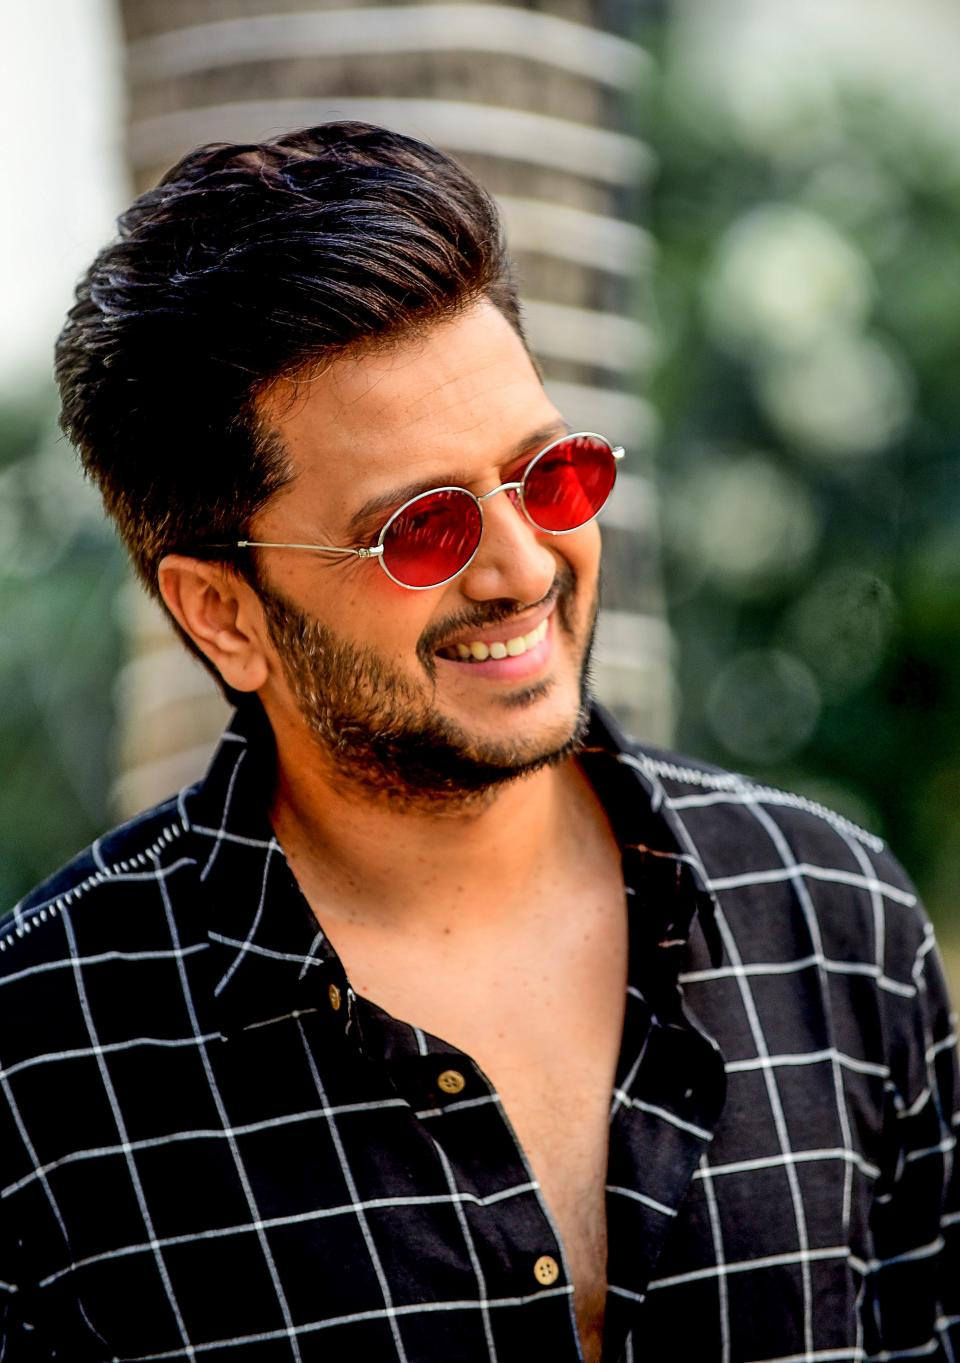 Bollywood actor Riteish Deshmukh poses for photographs during the promotion of his upcoming romantic action Hindi film 'Marjaavaan' in Mumbai on November 13, 2019. (Photo by Sujit Jaiswal / AFP) (Photo by SUJIT JAISWAL/AFP via Getty Images)